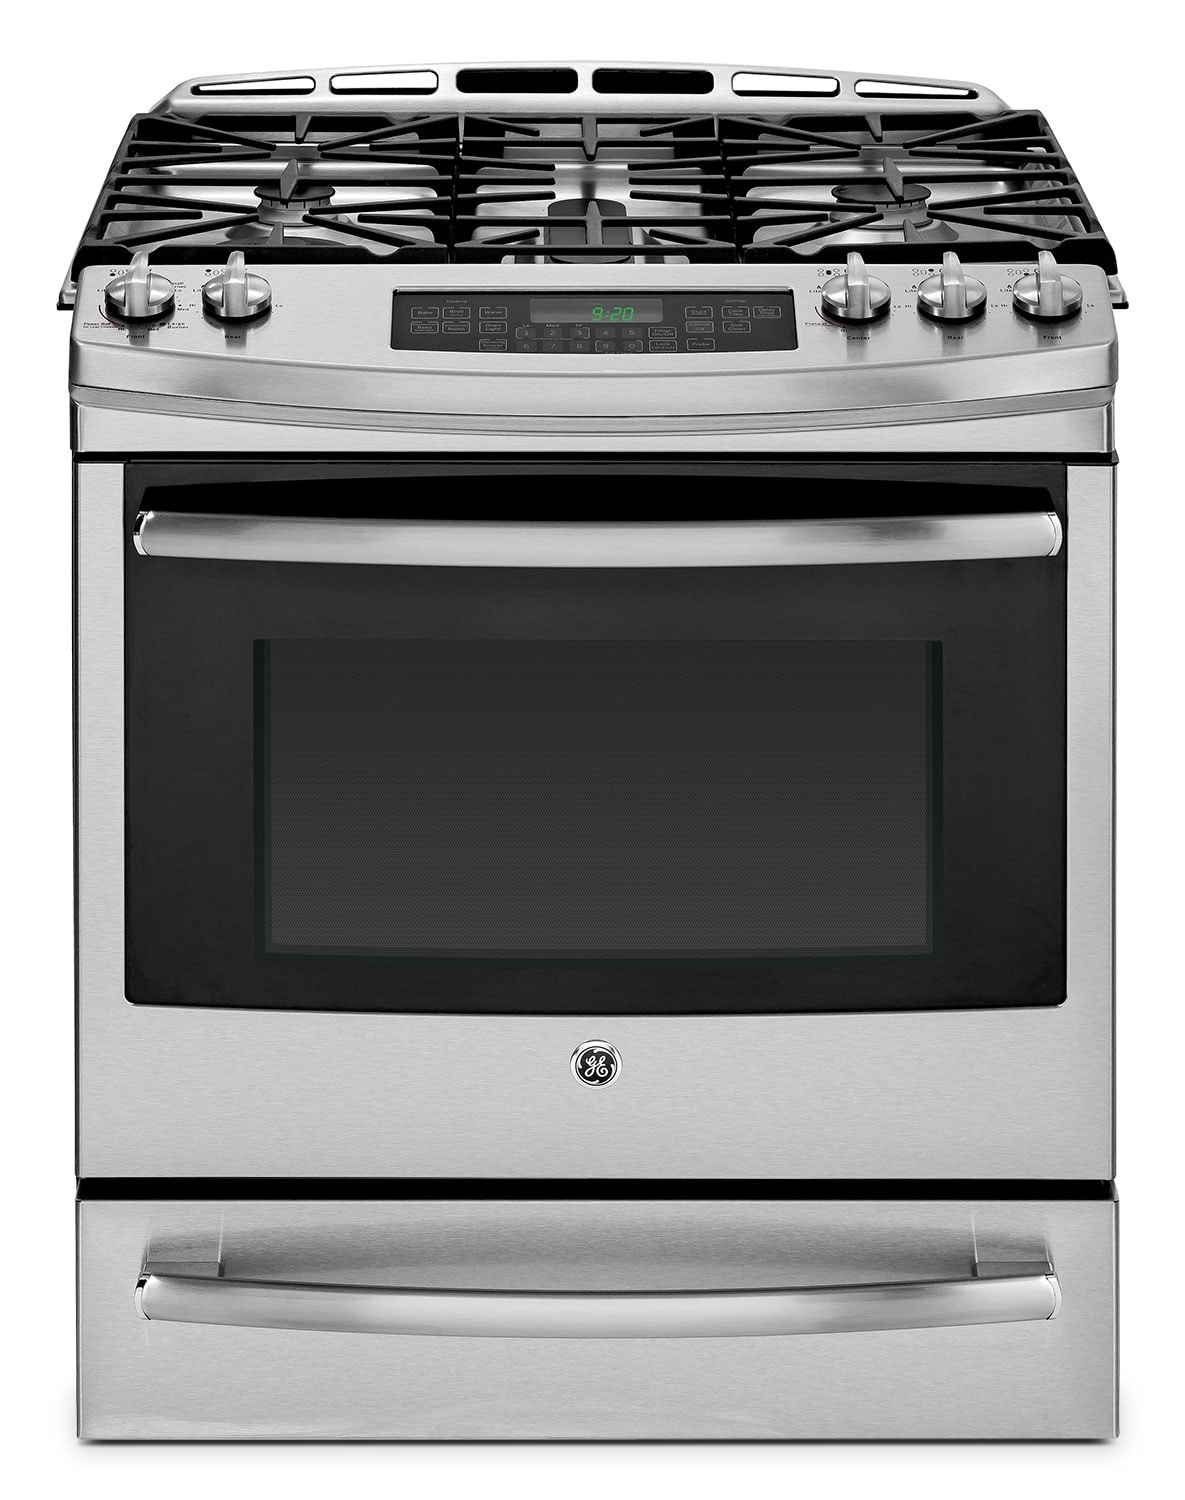 GE Stainless Steel Slide-In Gas Convection Range (5.4 Cu. Ft.) - PCGS920SEFSS